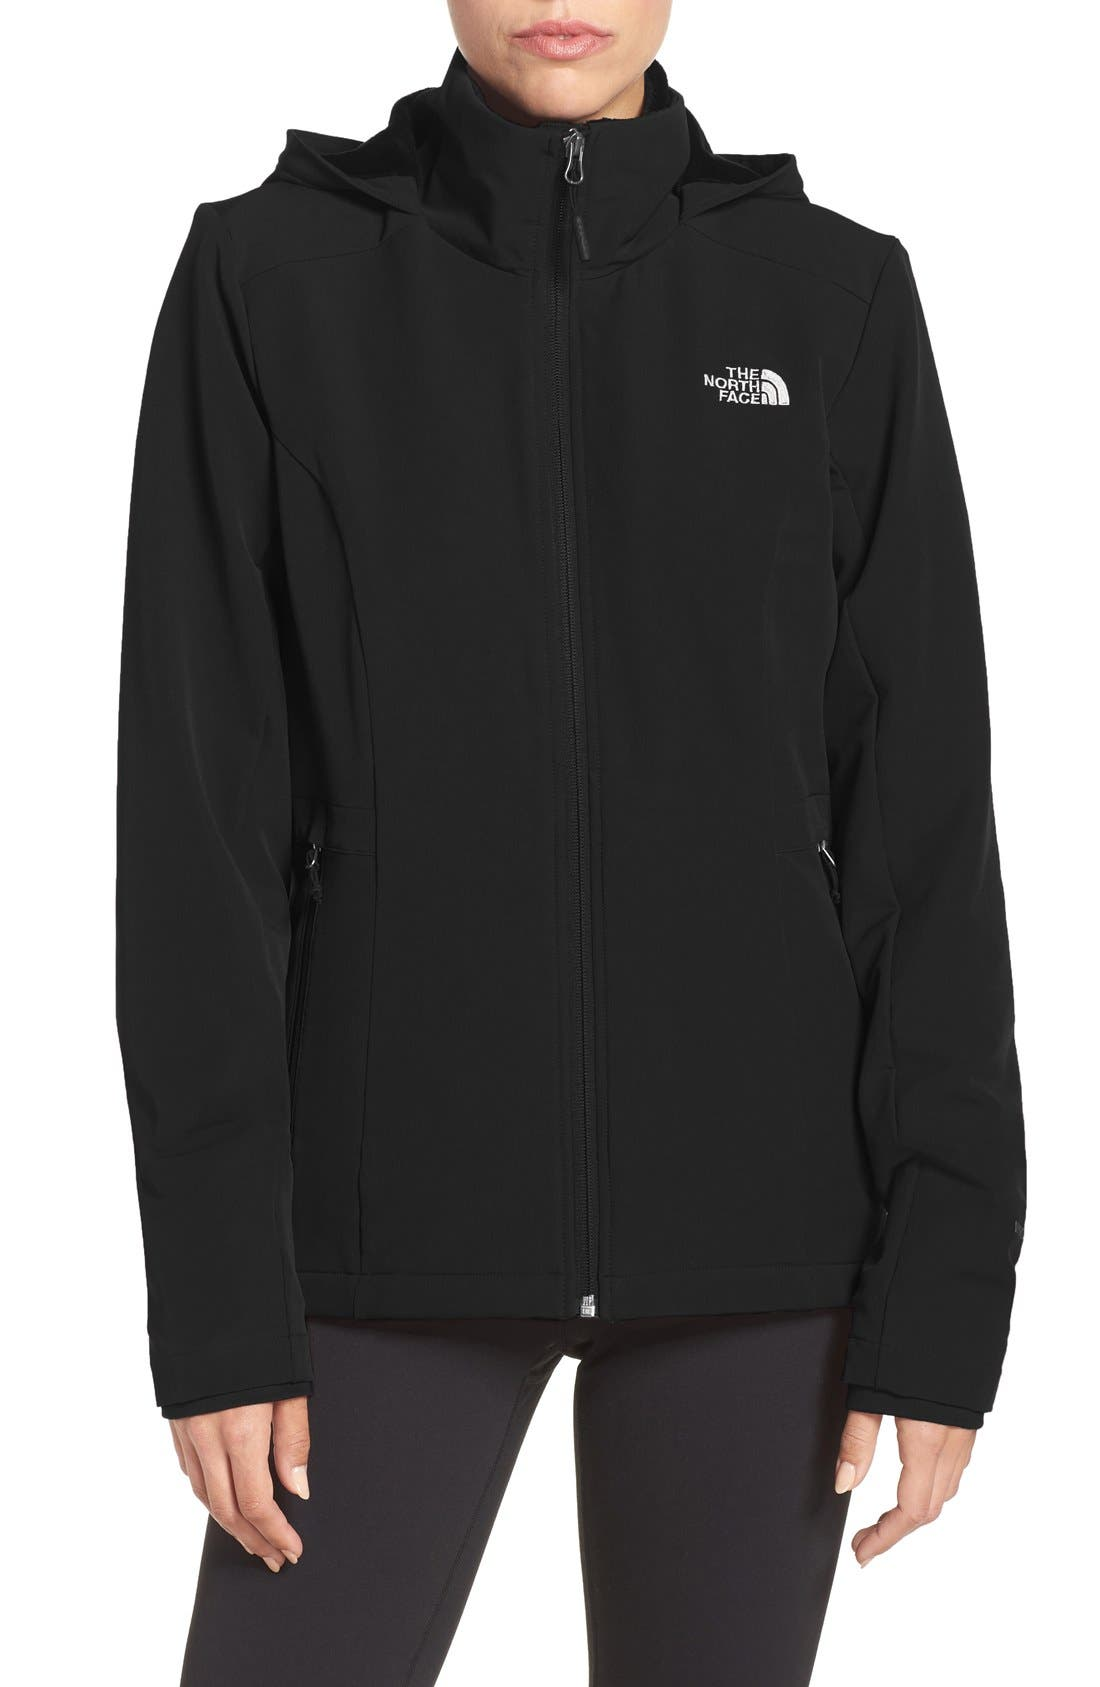 The North Face 'Shelbe Raschel' Softshell Jacket